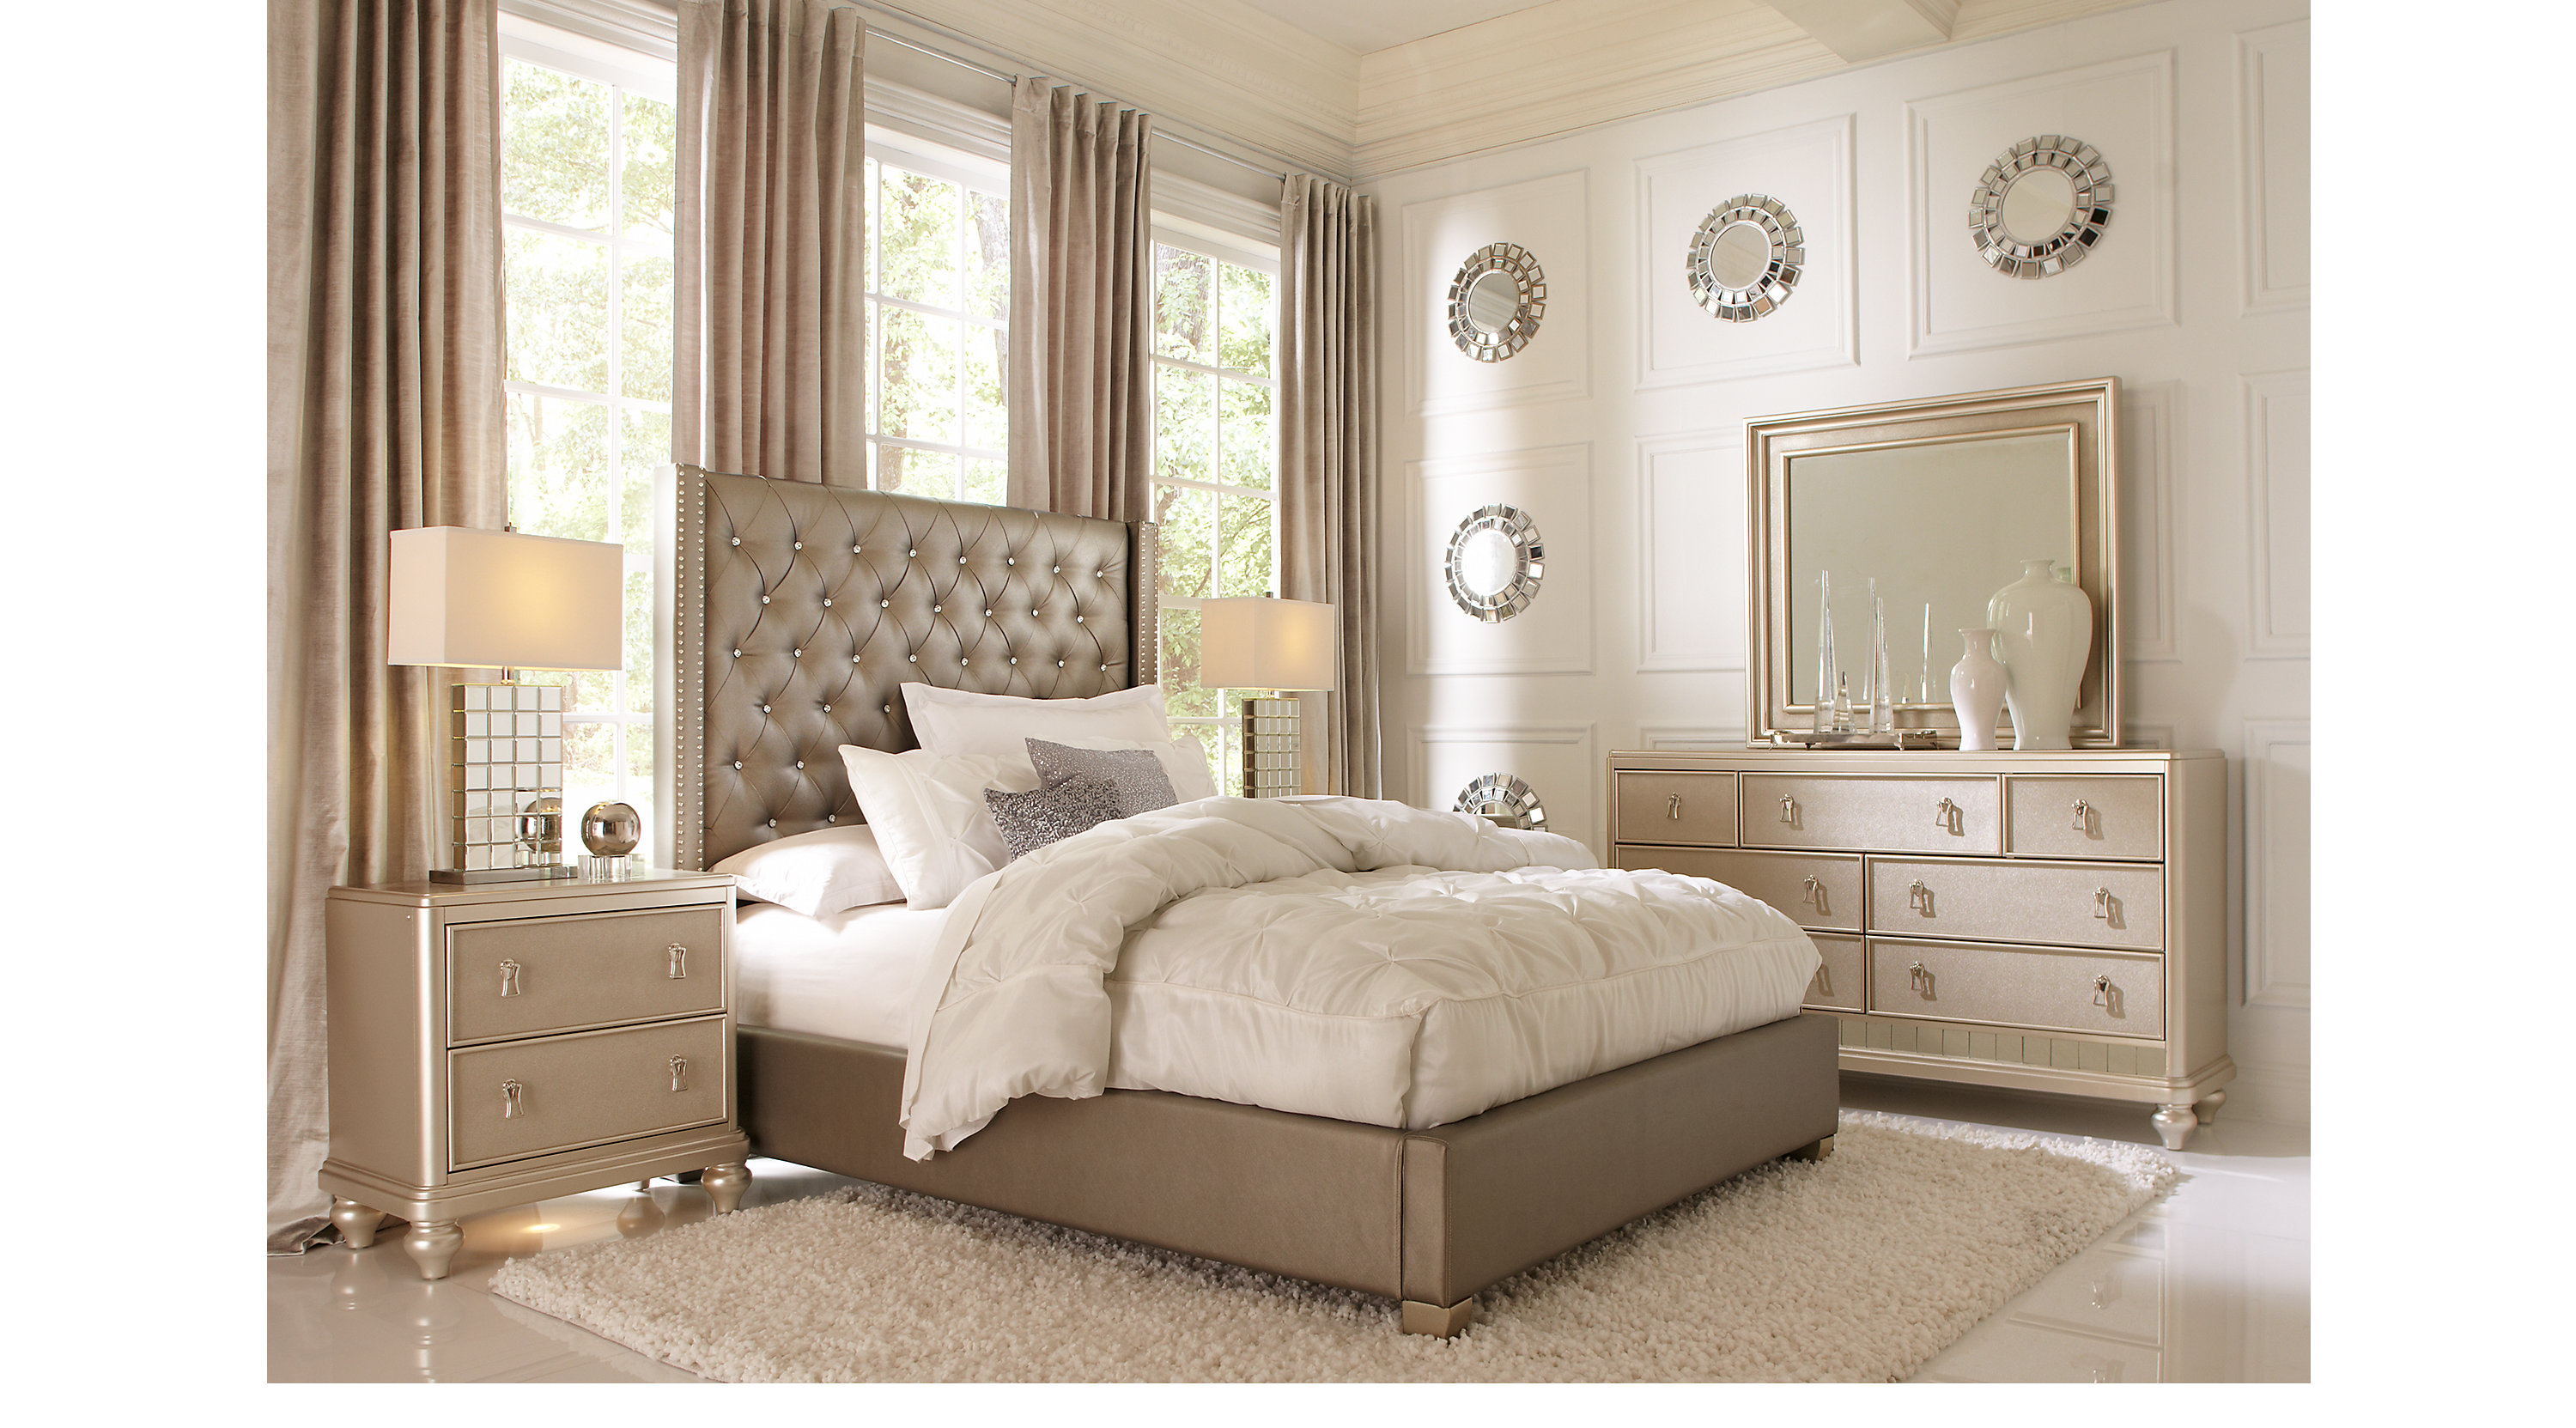 Paris gray 5 pc queen bedroom upholstered contemporary for 3 bedroom set